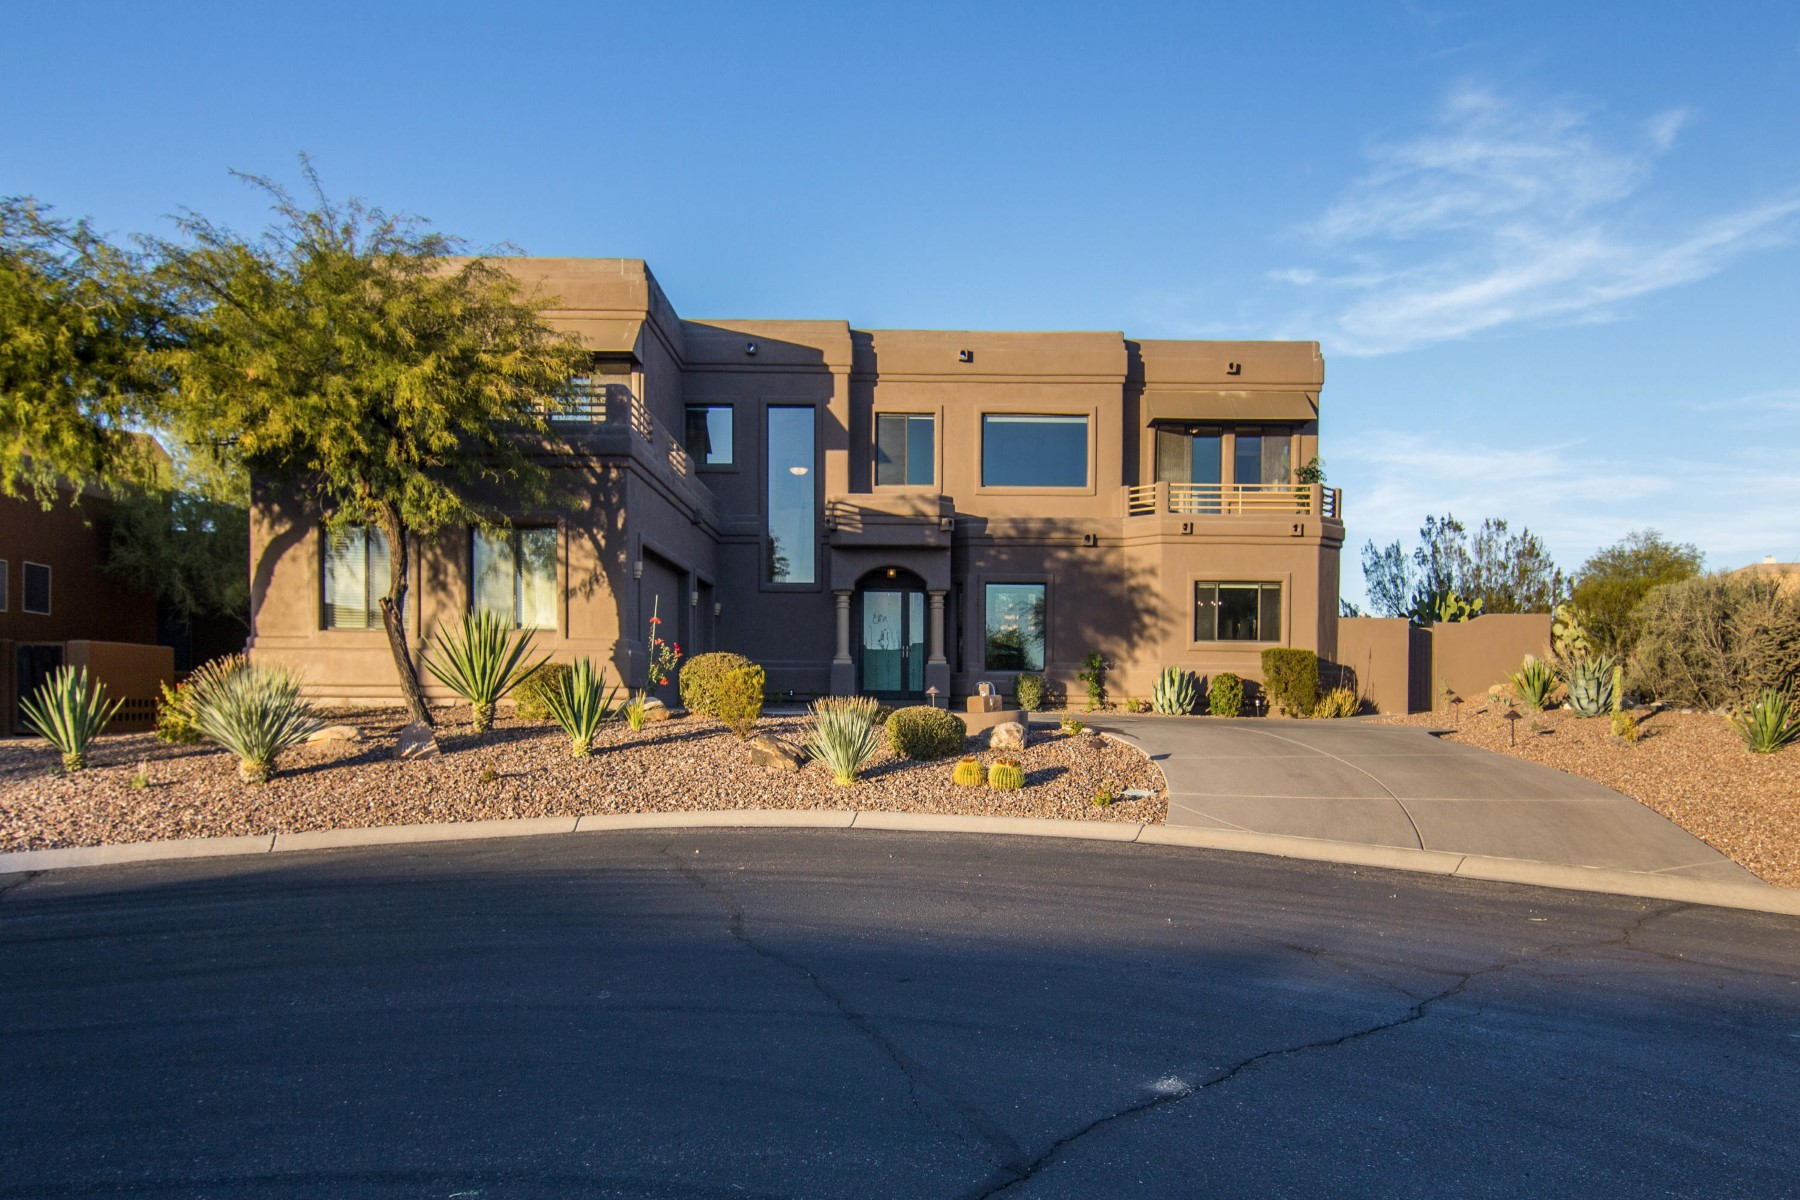 Single Family Home for Sale at Desert living with a modern flare in guard gated Troon North 10970 E Dale Ln Scottsdale, Arizona, 85262 United States